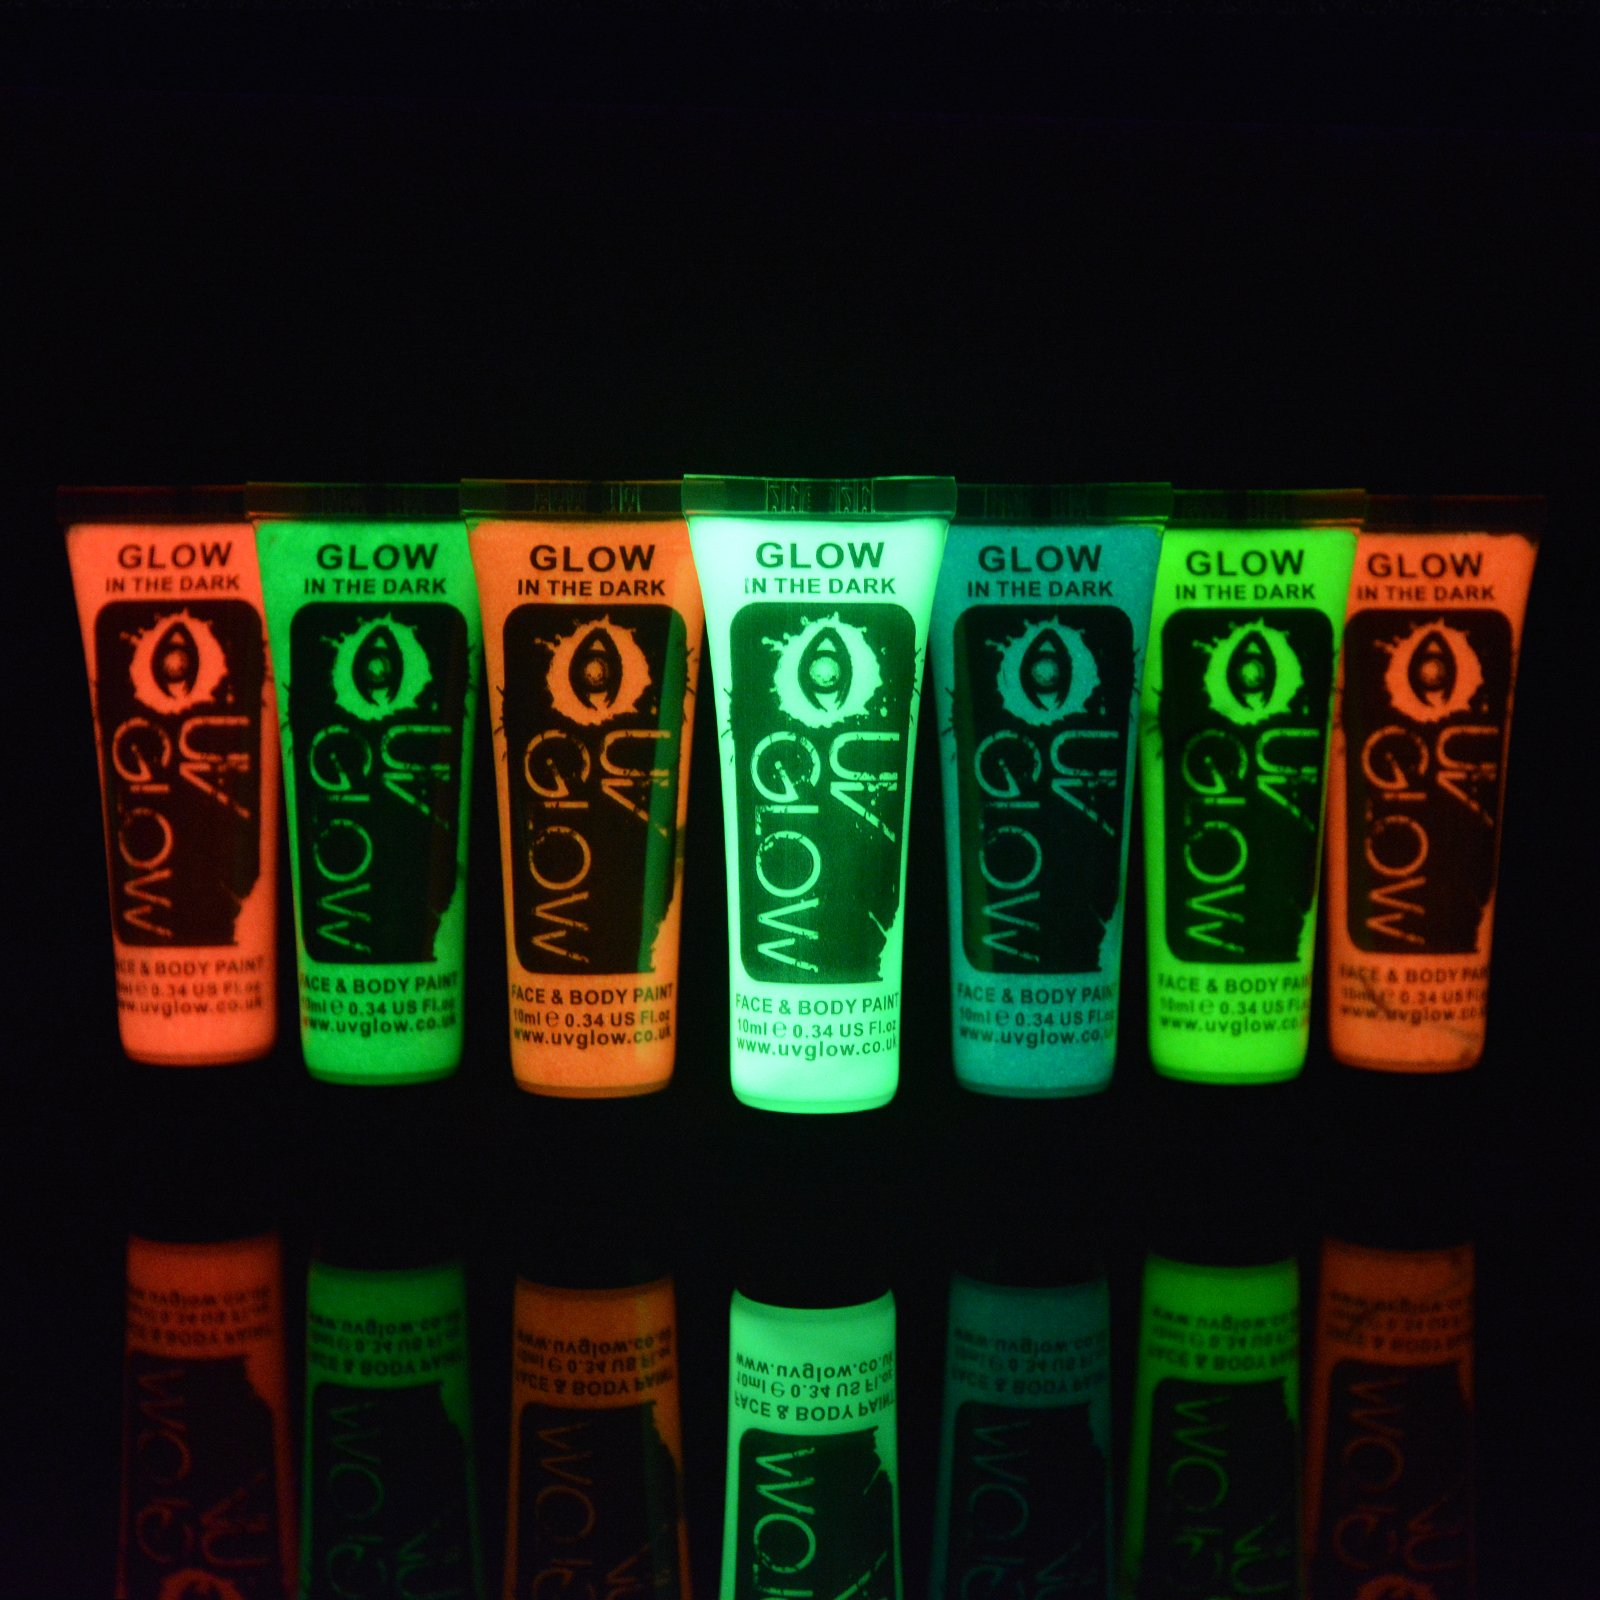 UV Glow - Glow in the Dark Face & Body Paint 0.34oz - Pack of 28 Tubes